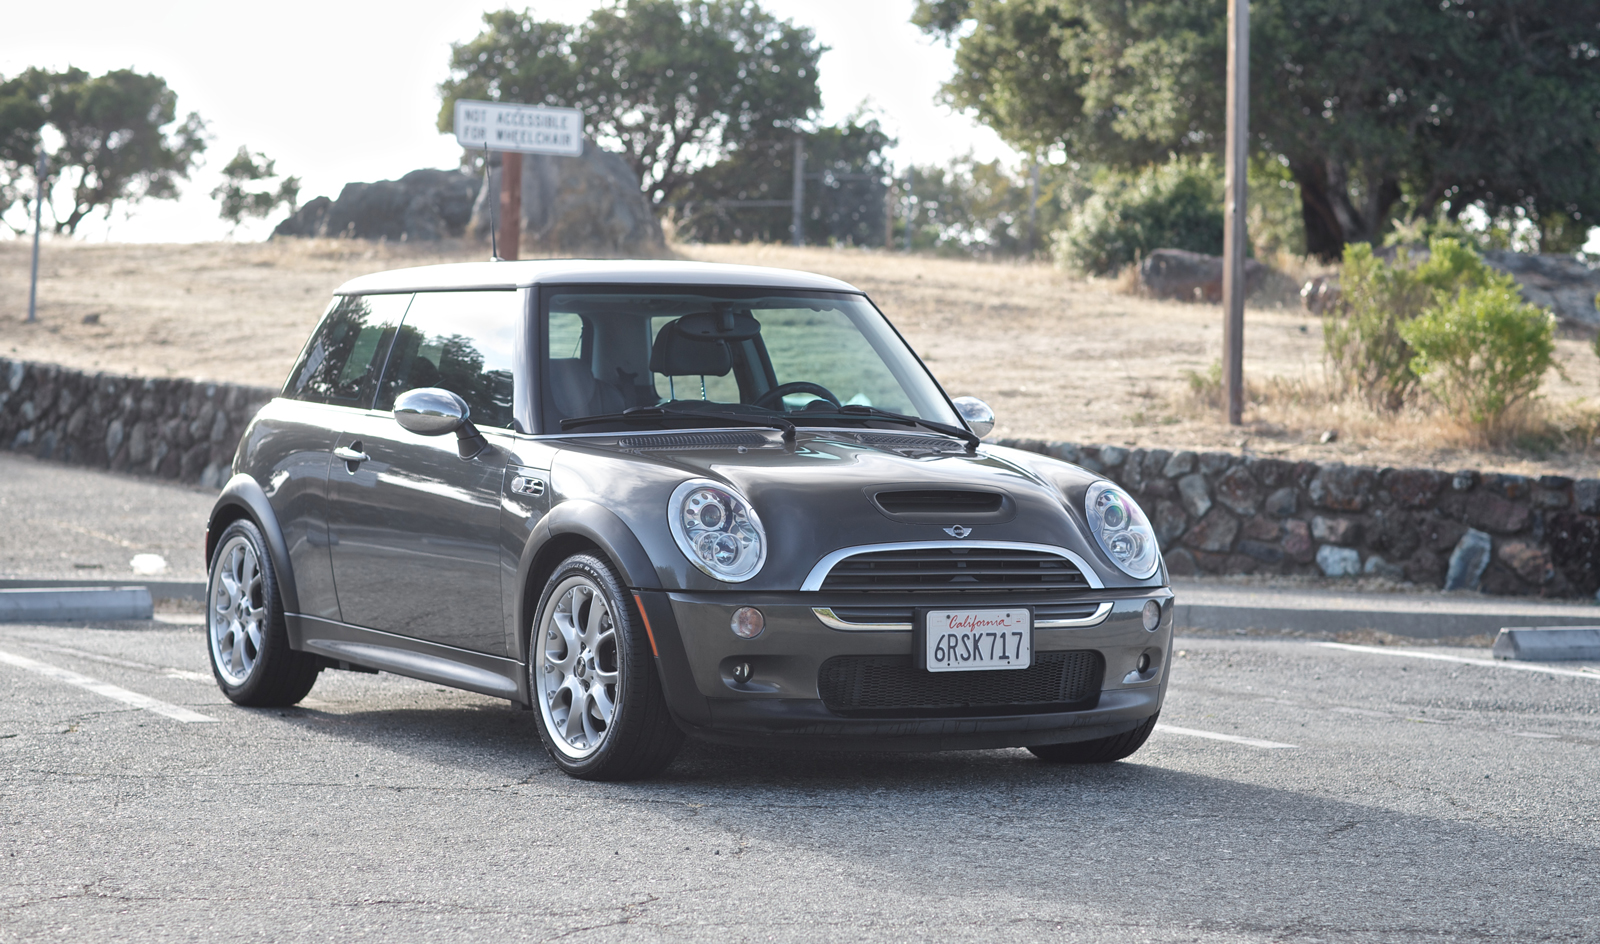 fs clean fully loaded 2006 mini cooper s with jcw engine upgrade north american motoring. Black Bedroom Furniture Sets. Home Design Ideas